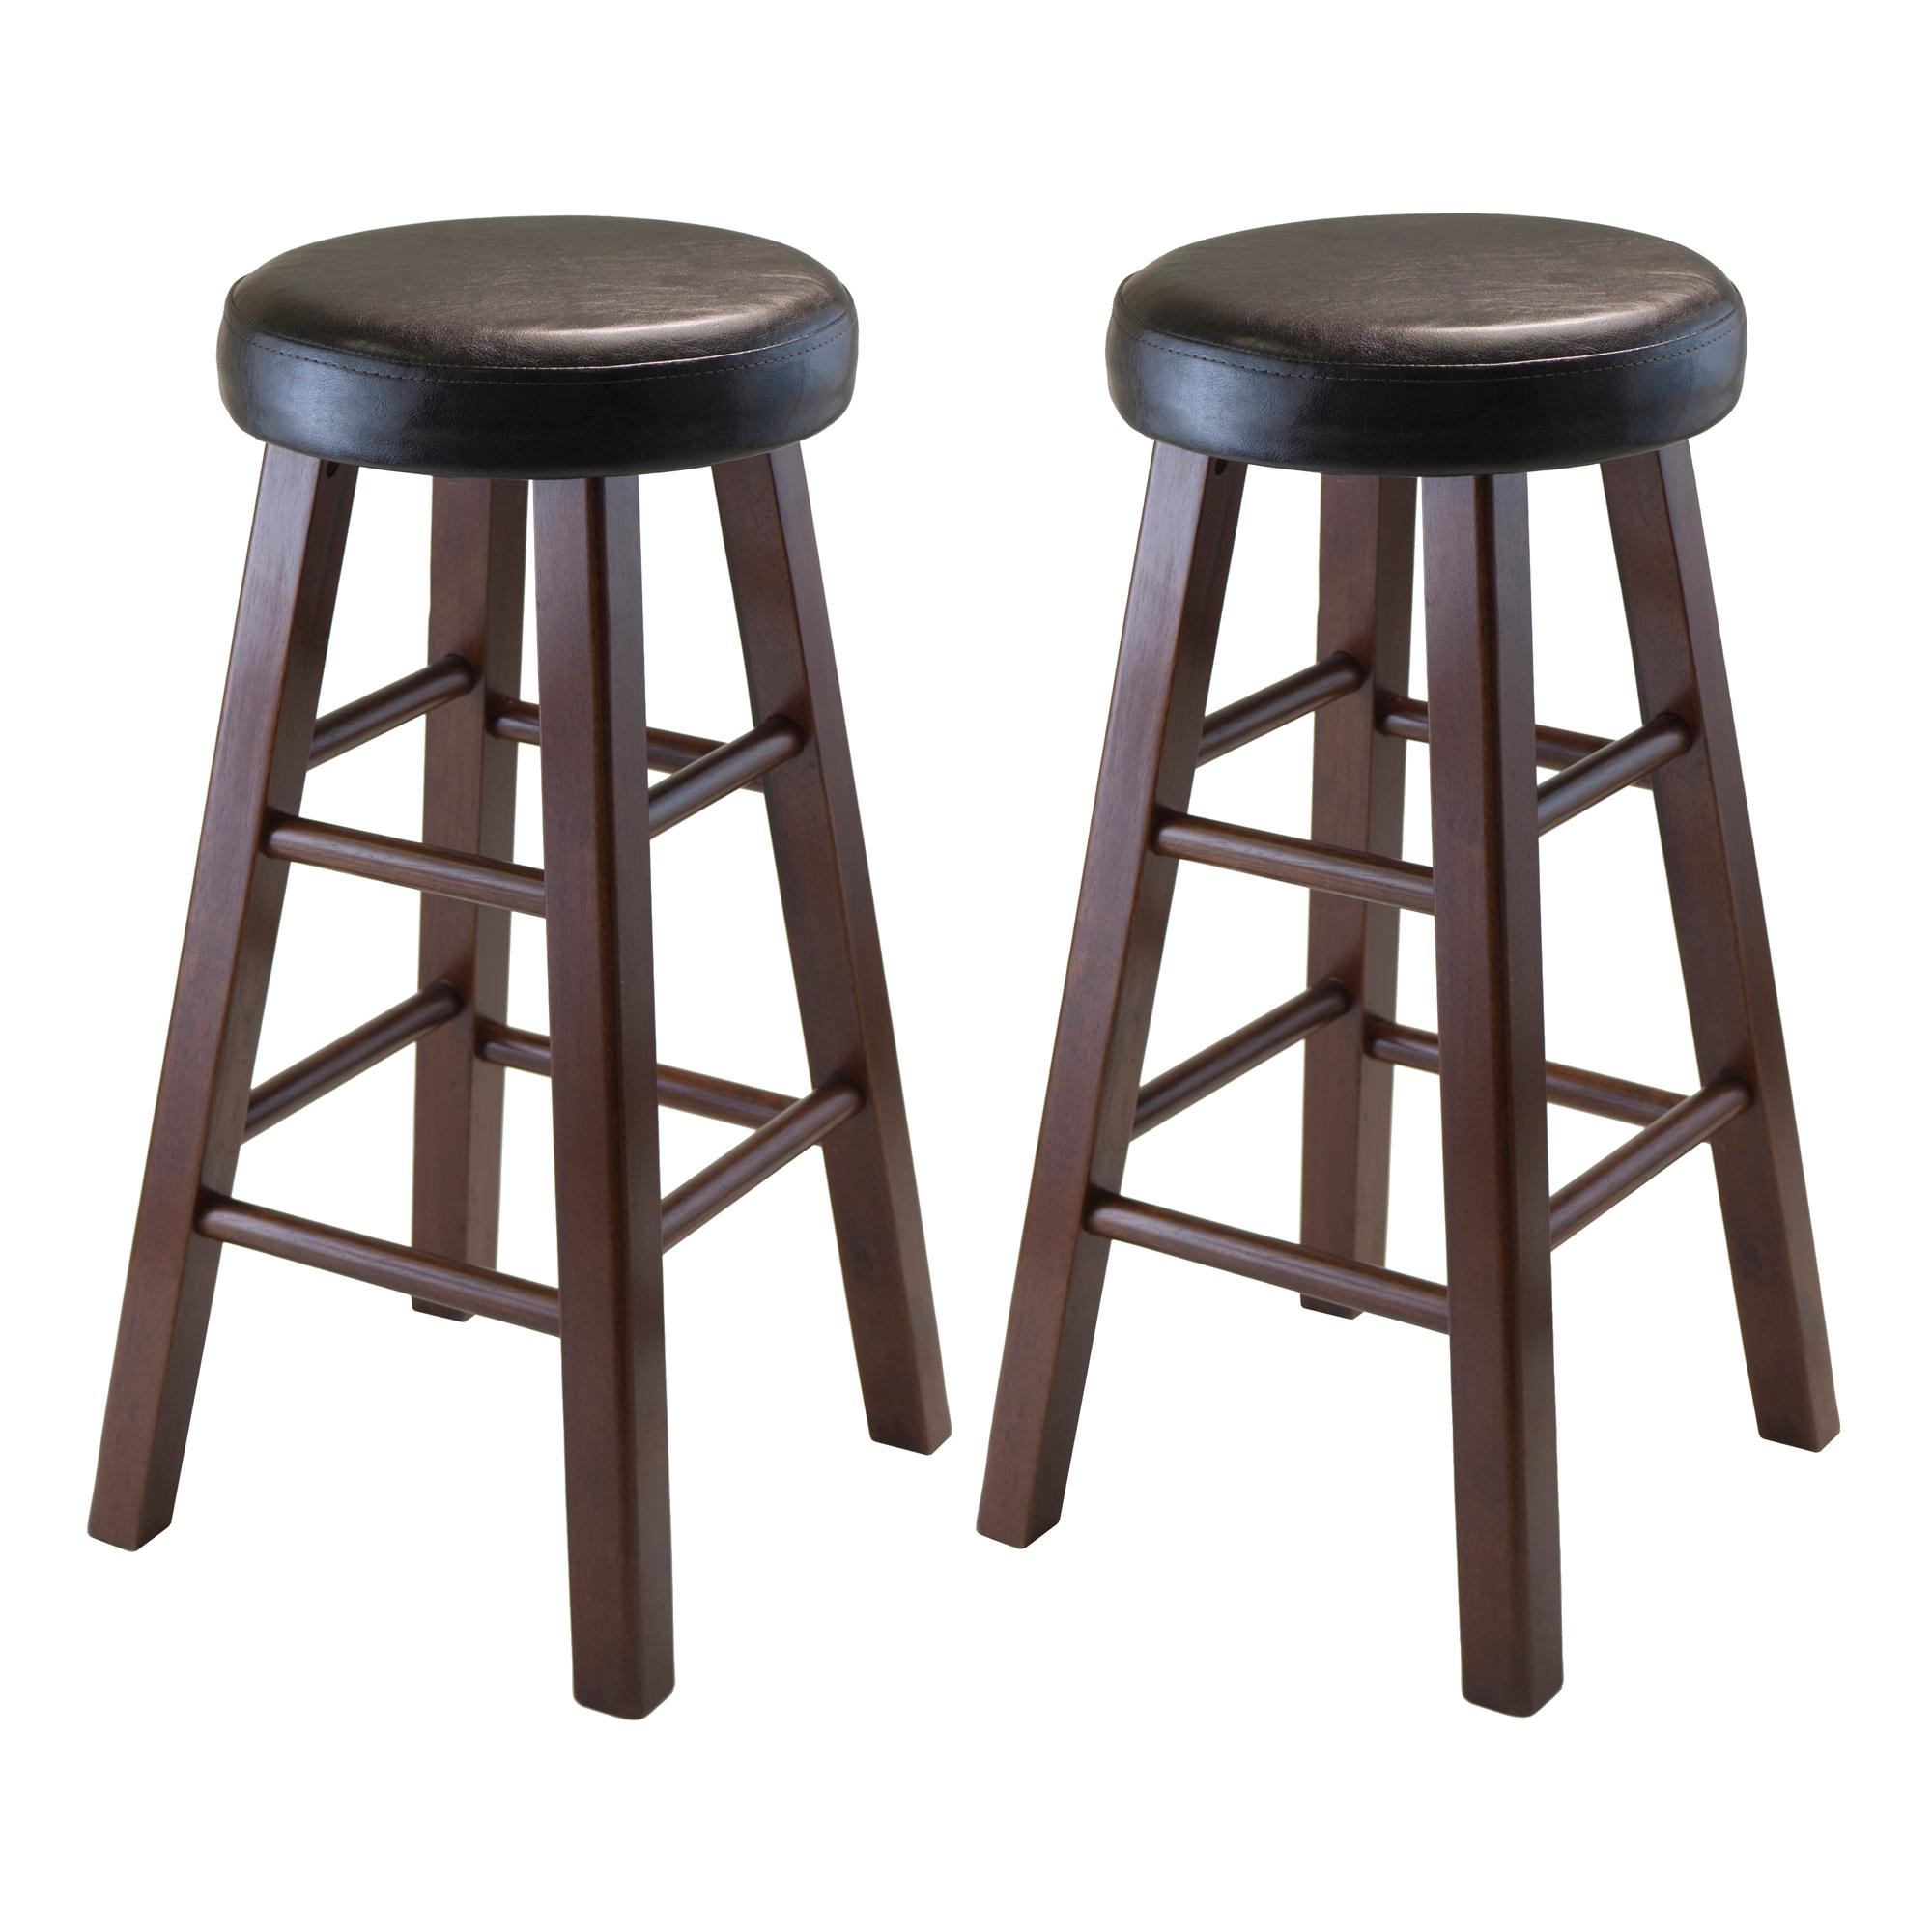 Elegant 24 Swivel Bar Stool Padded Seat